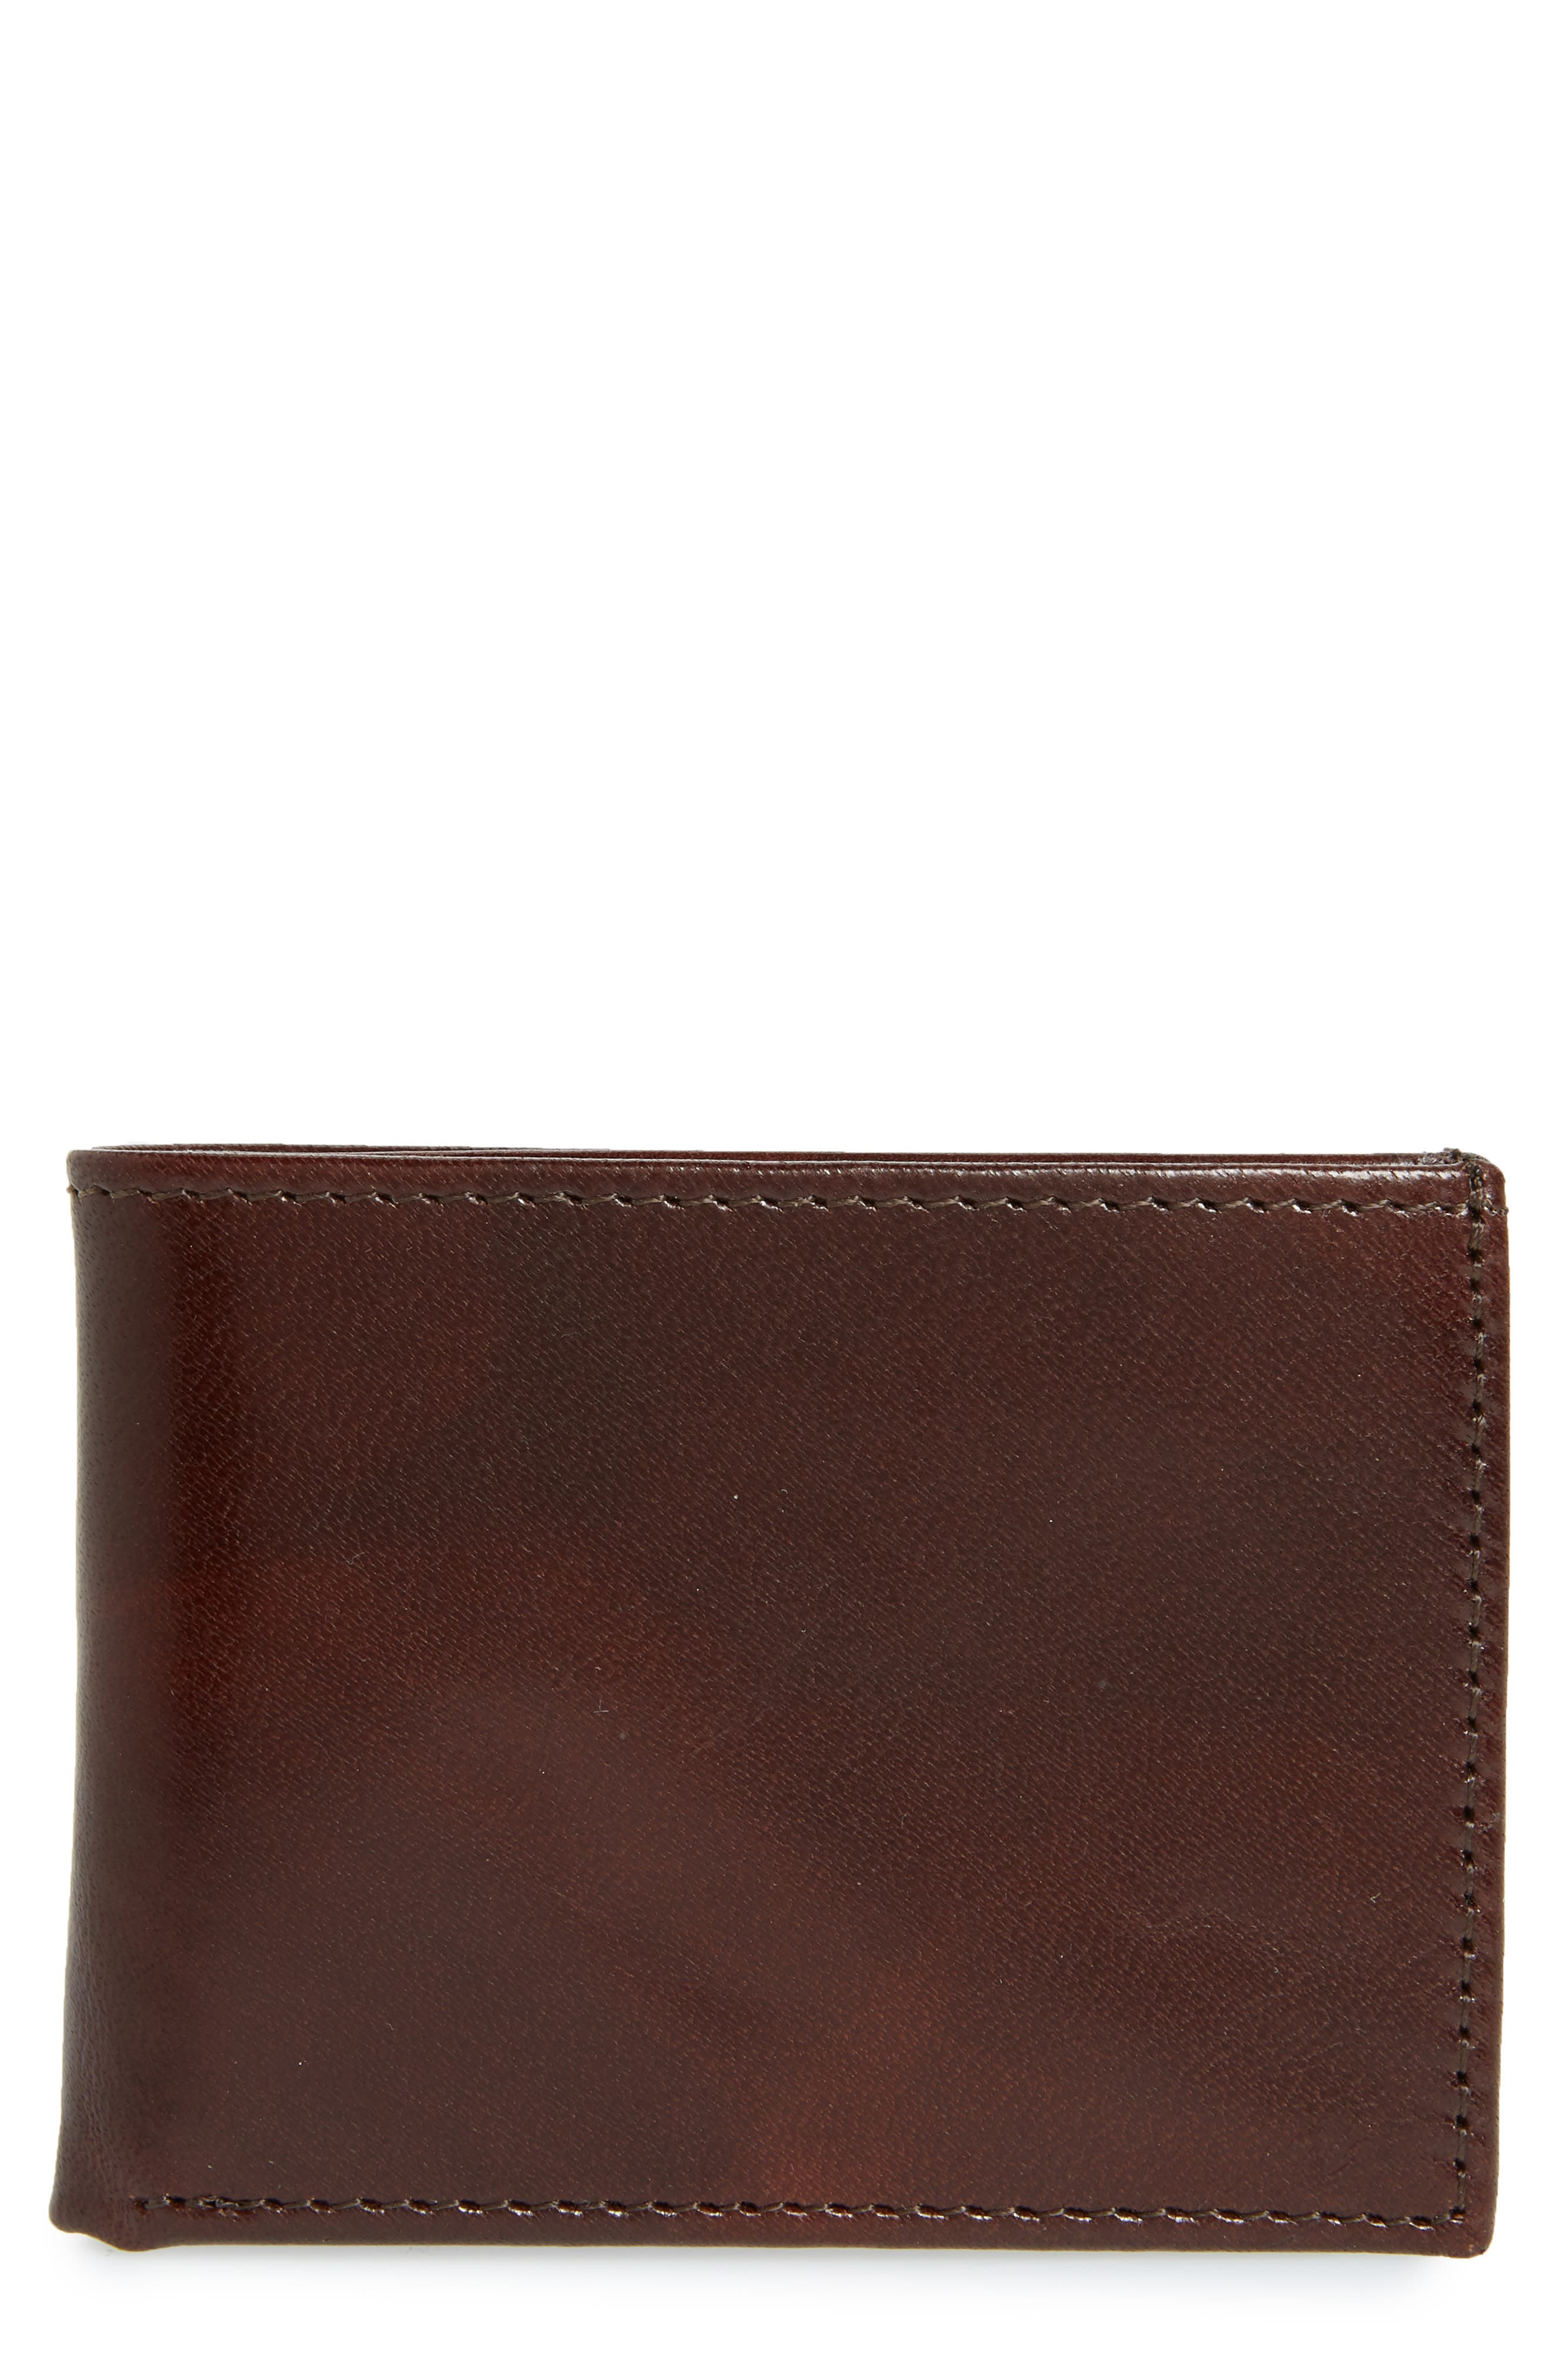 JOHNSTON & MURPHY, Leather Wallet, Main thumbnail 1, color, BROWN